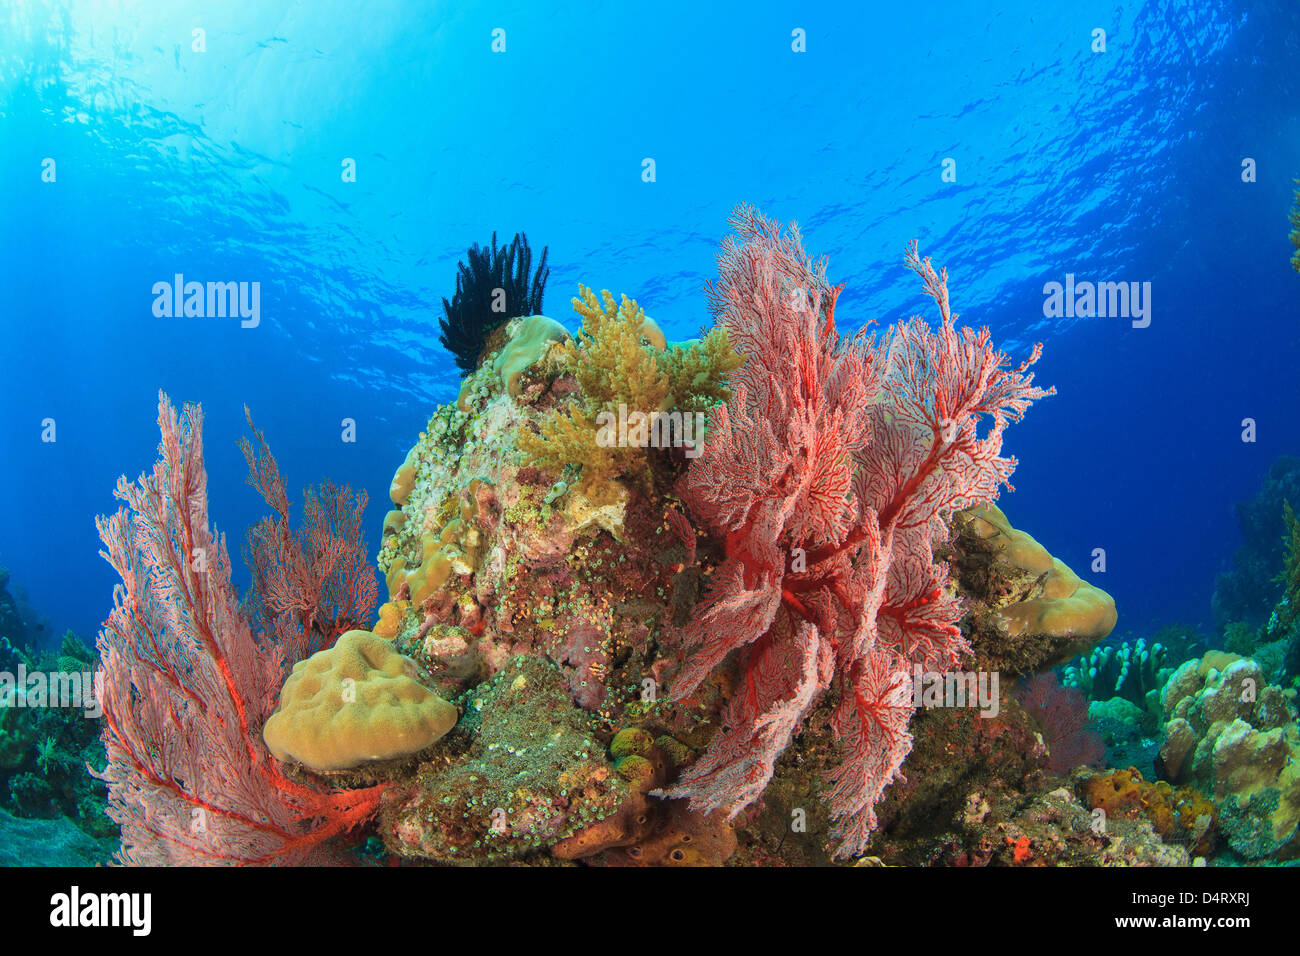 Sea fans on coral reef Stock Photo